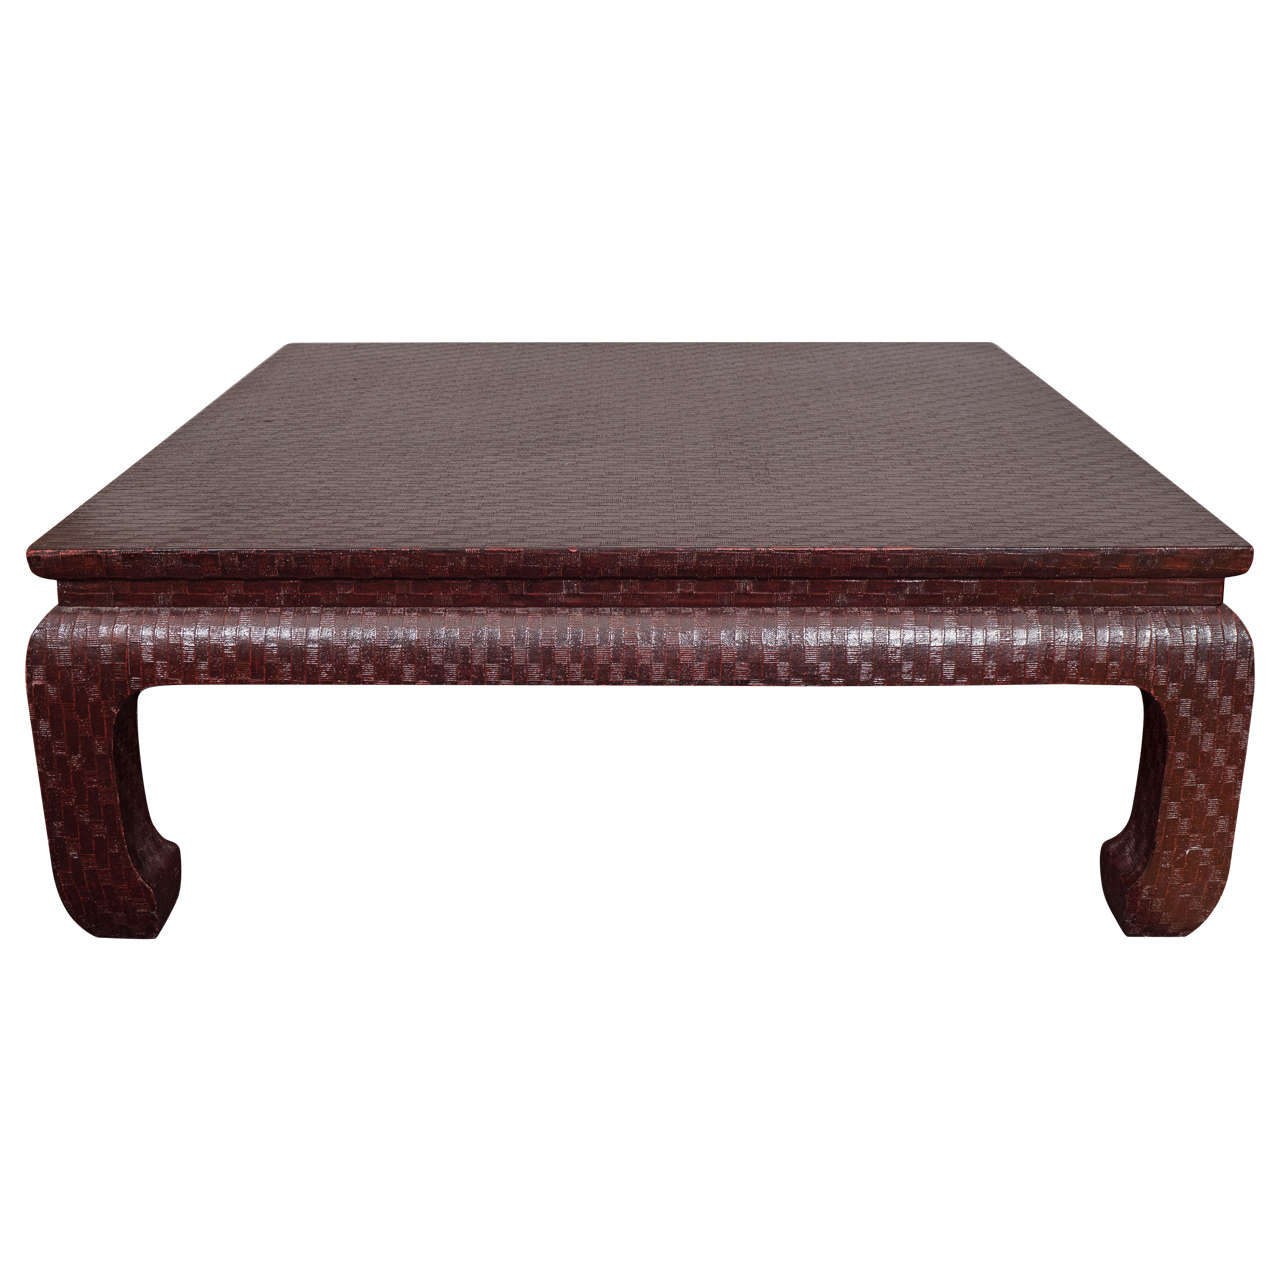 Grasscloth Coffee Table Karl Springer Style Burgundy Grasscloth Coffee Table By Baker At